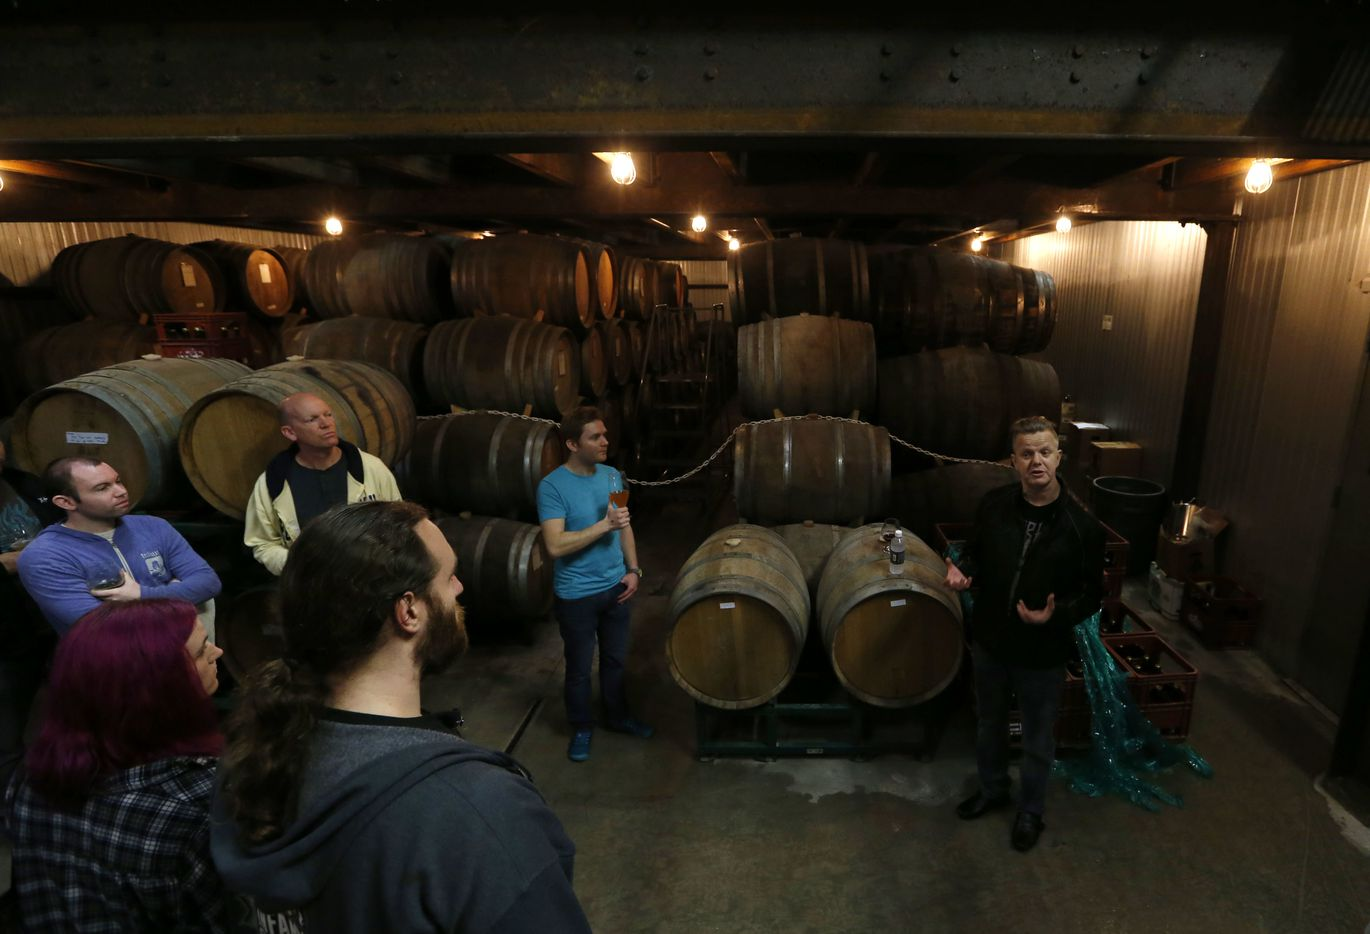 Marc Nelipovich guides a tour at Jester King Brewery in Austin, Texas on Friday, February 23, 2018.